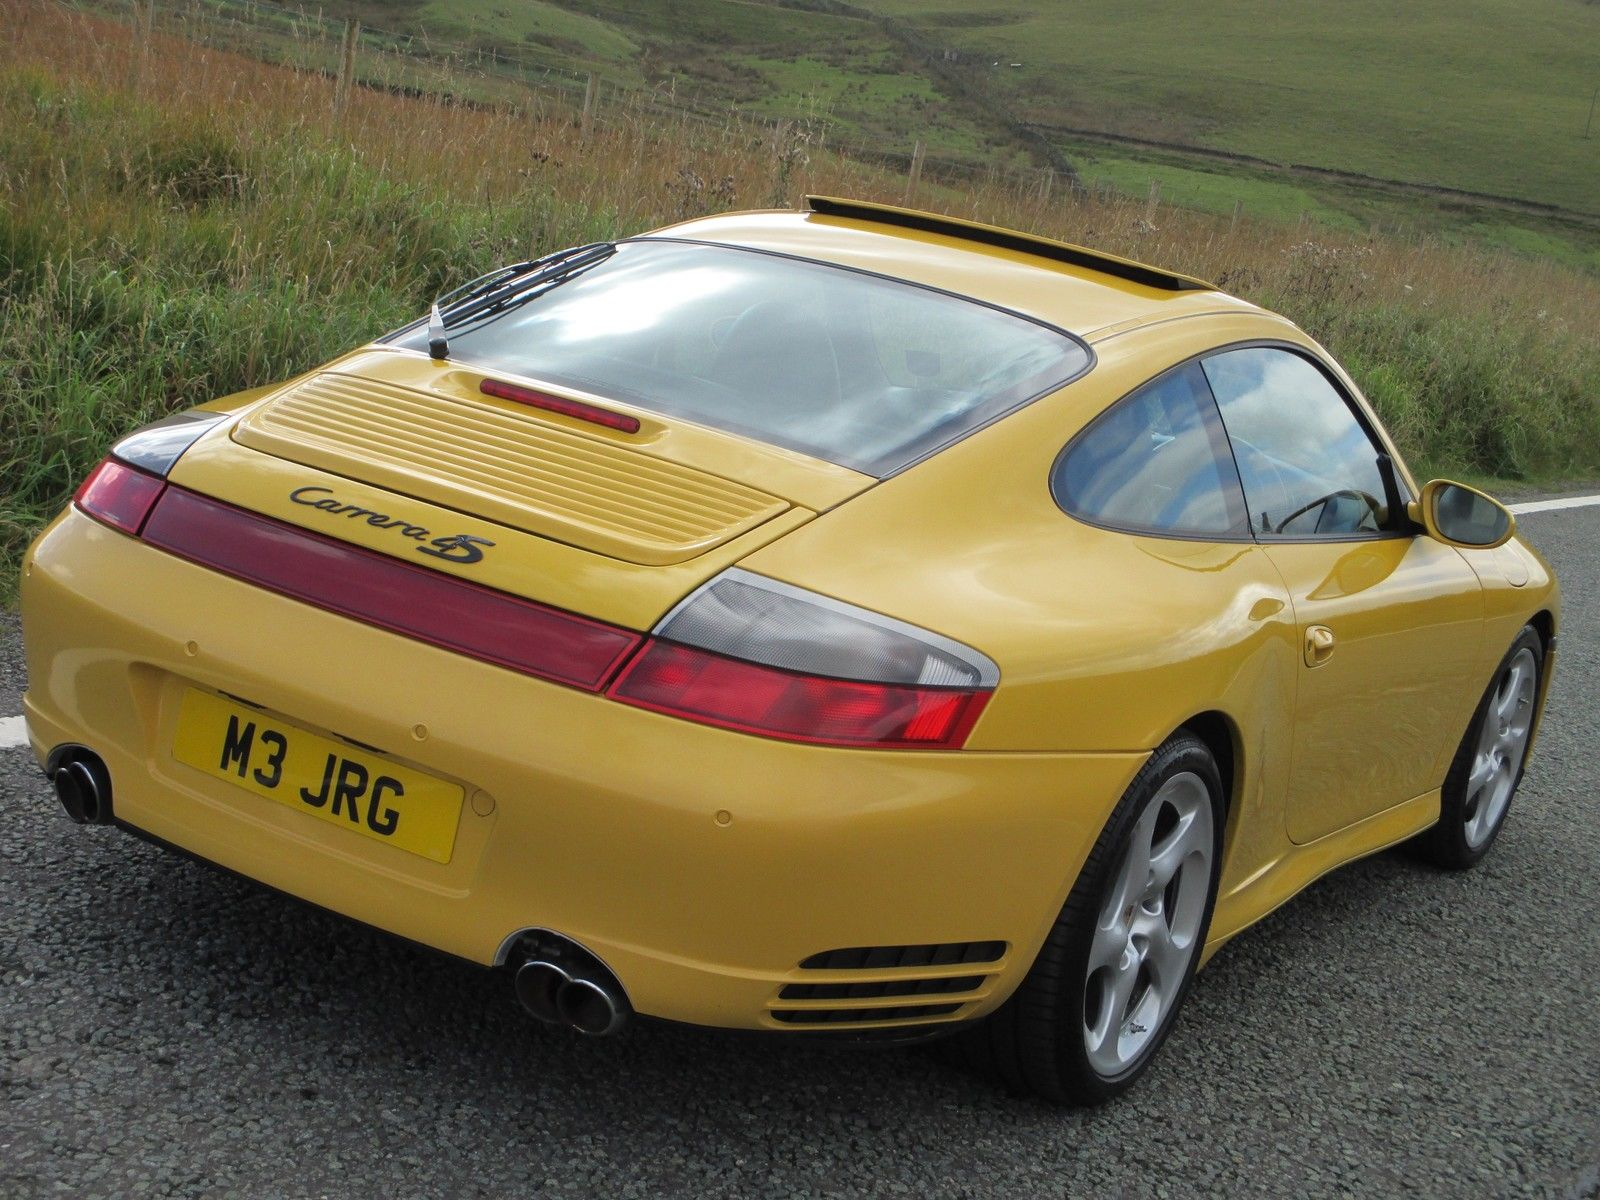 Porsche 996 Carrera 4s Turbo Body Ck Classic Cars